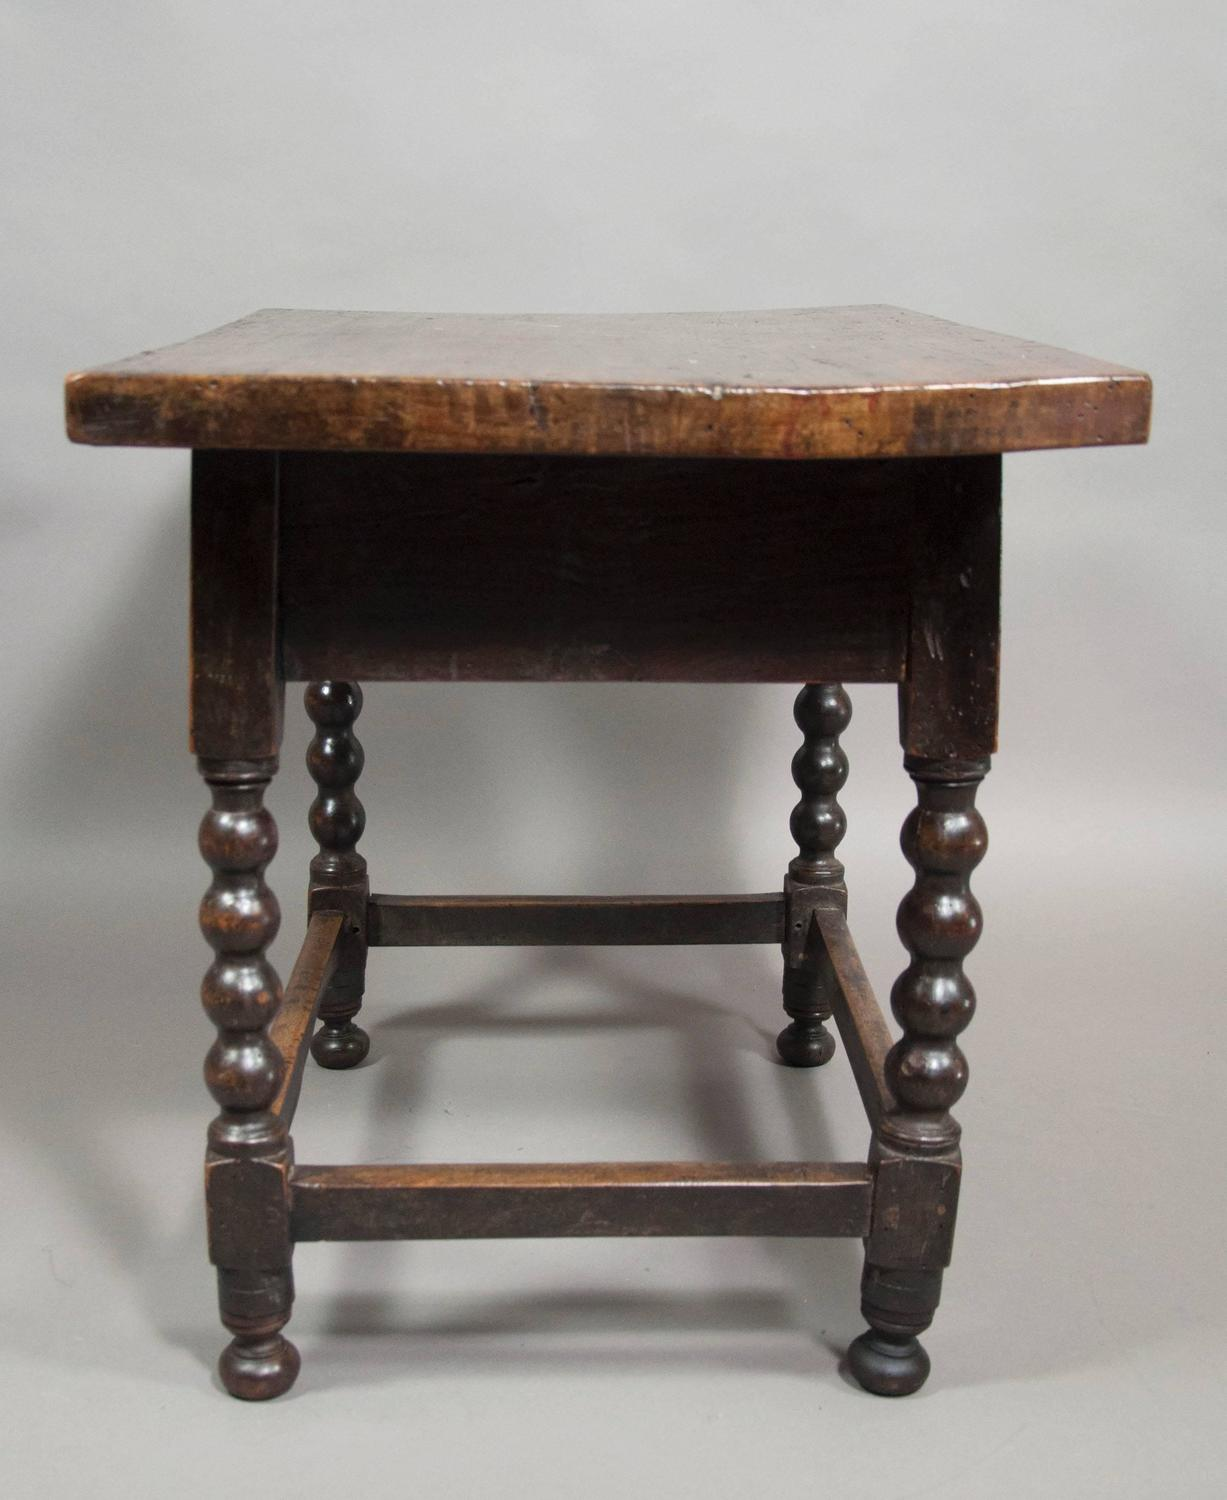 Spanish baroque walnut side table at 1stdibs for Spanish baroque furniture